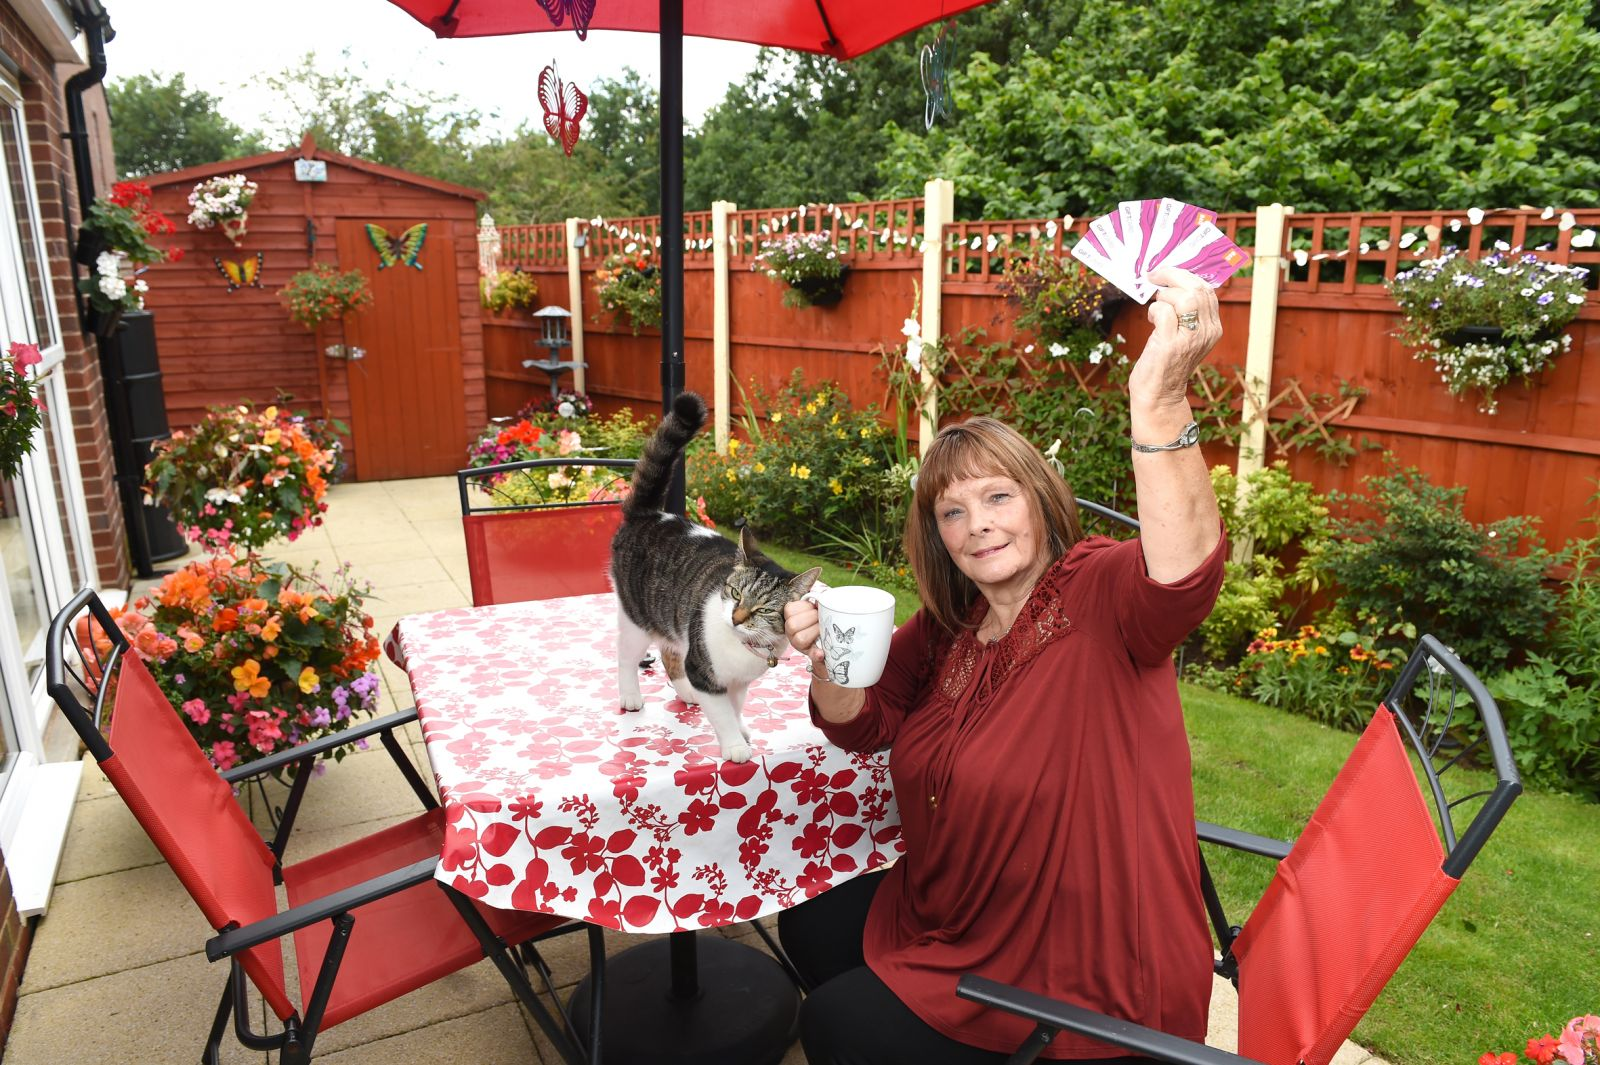 Marilyn Lees won Best Individual Garden in Six Town Housing's Flower Power Gardening Competition